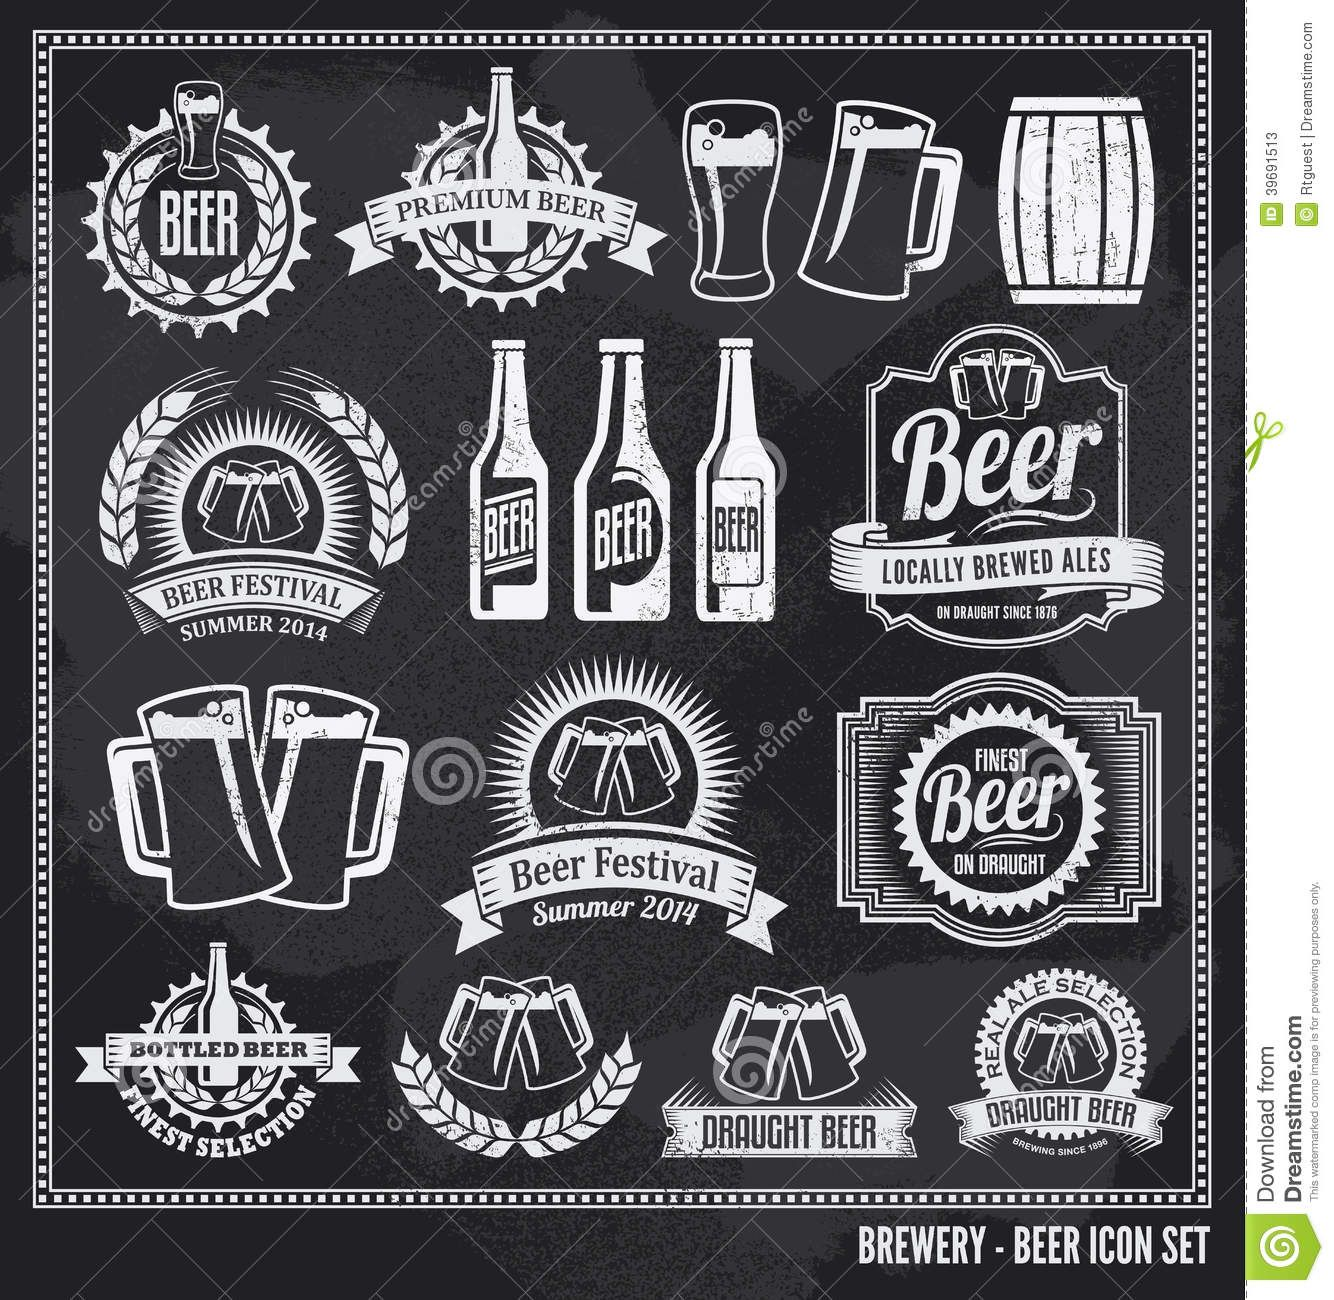 Beer clipart chalkboard. Icon set labels posters